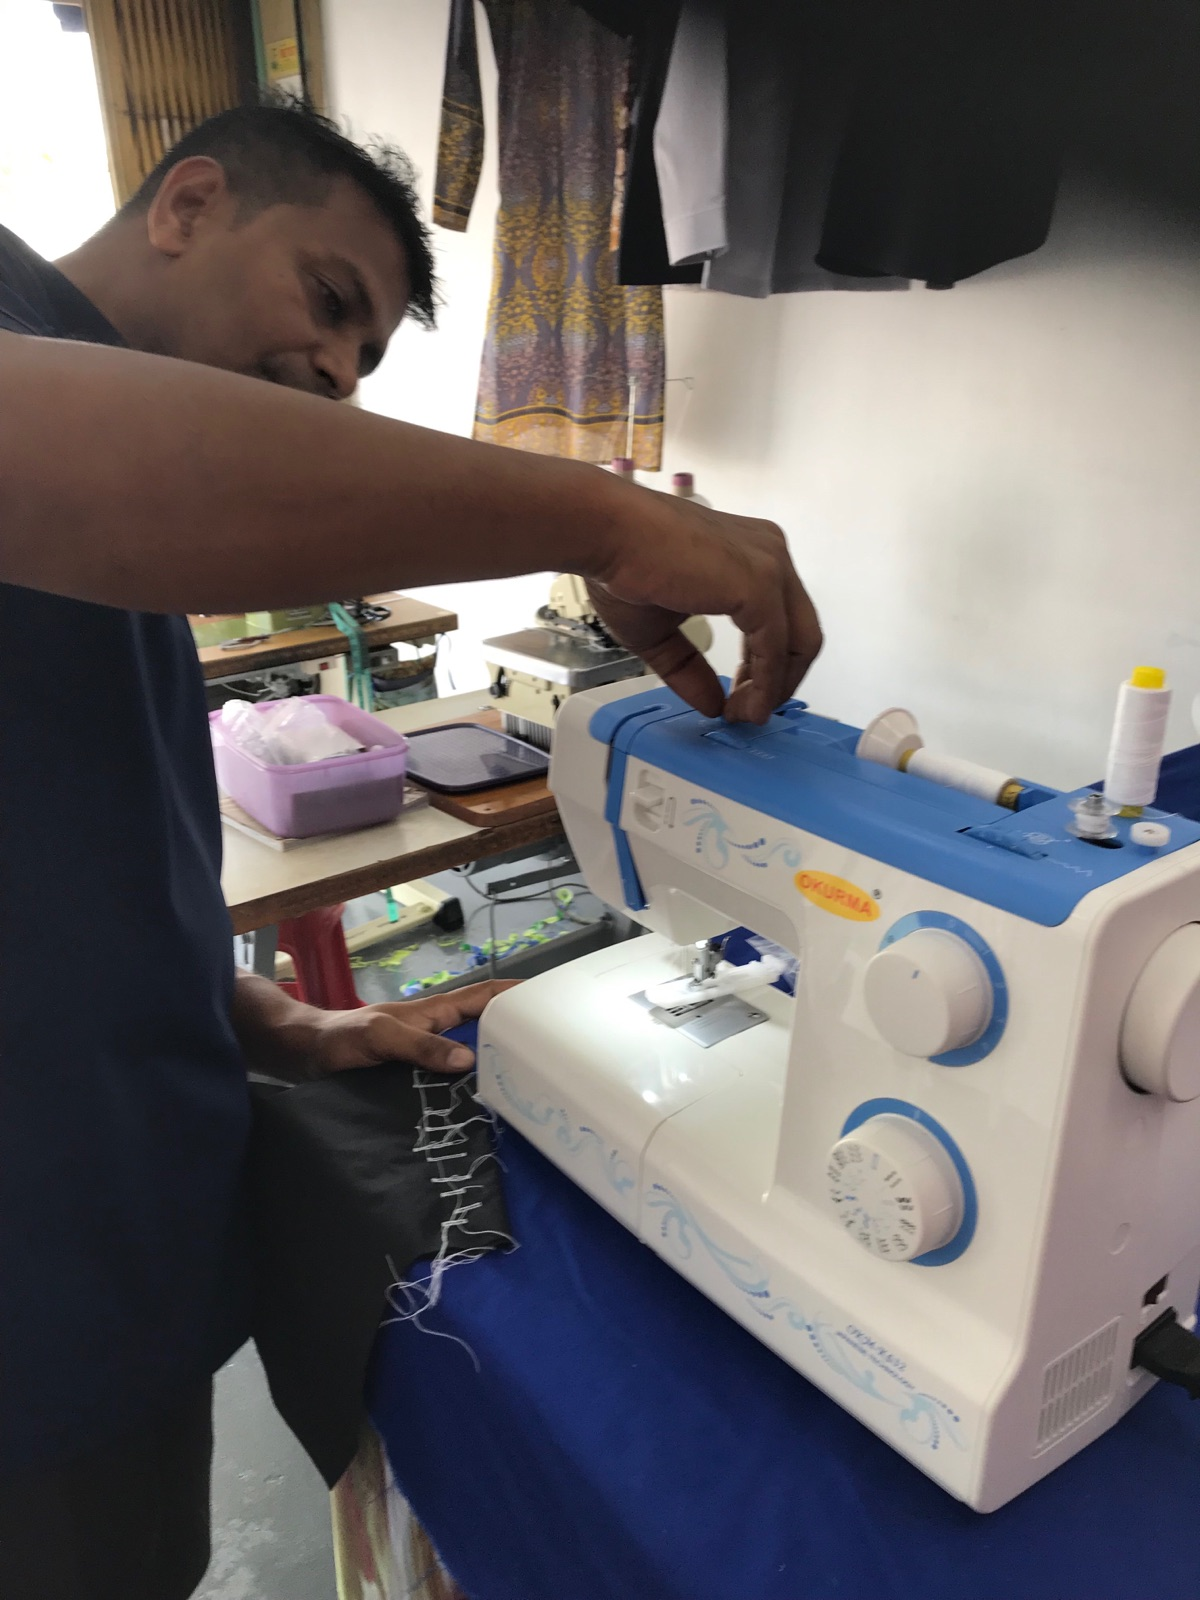 Display For Okurma Portable Sewing Machine